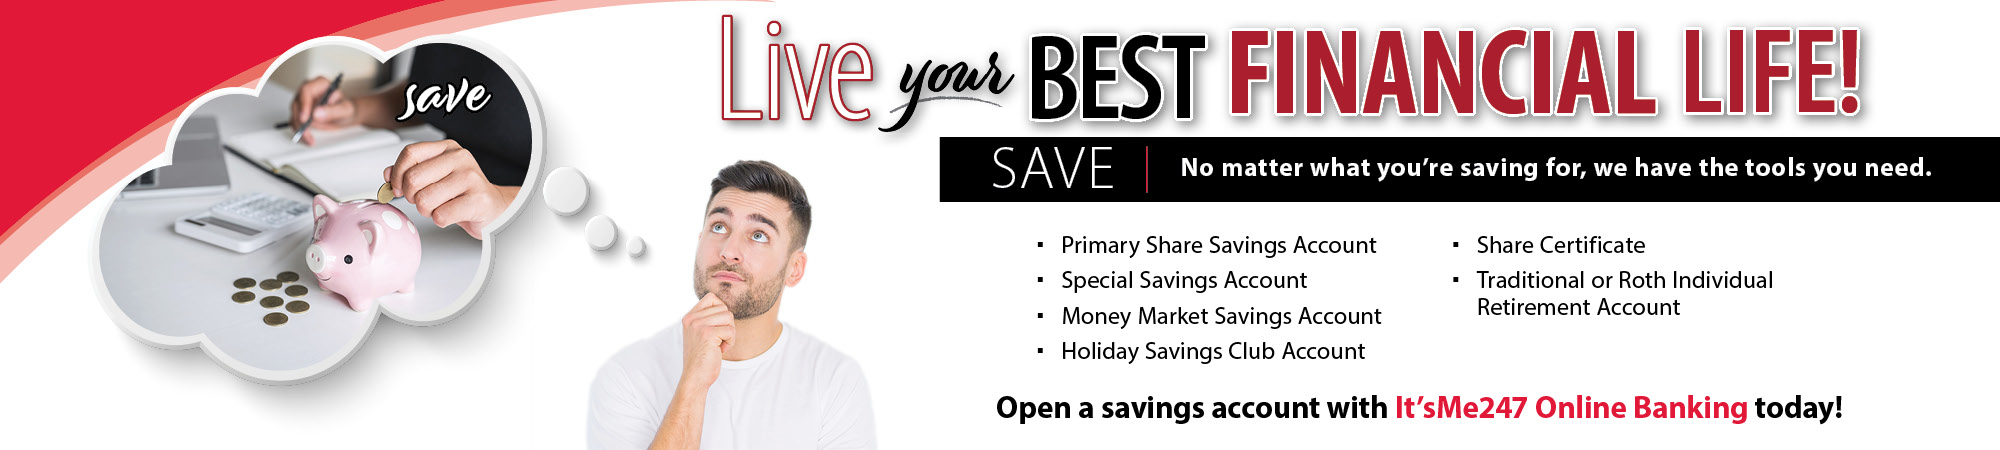 Save – Live your best financial life promotion